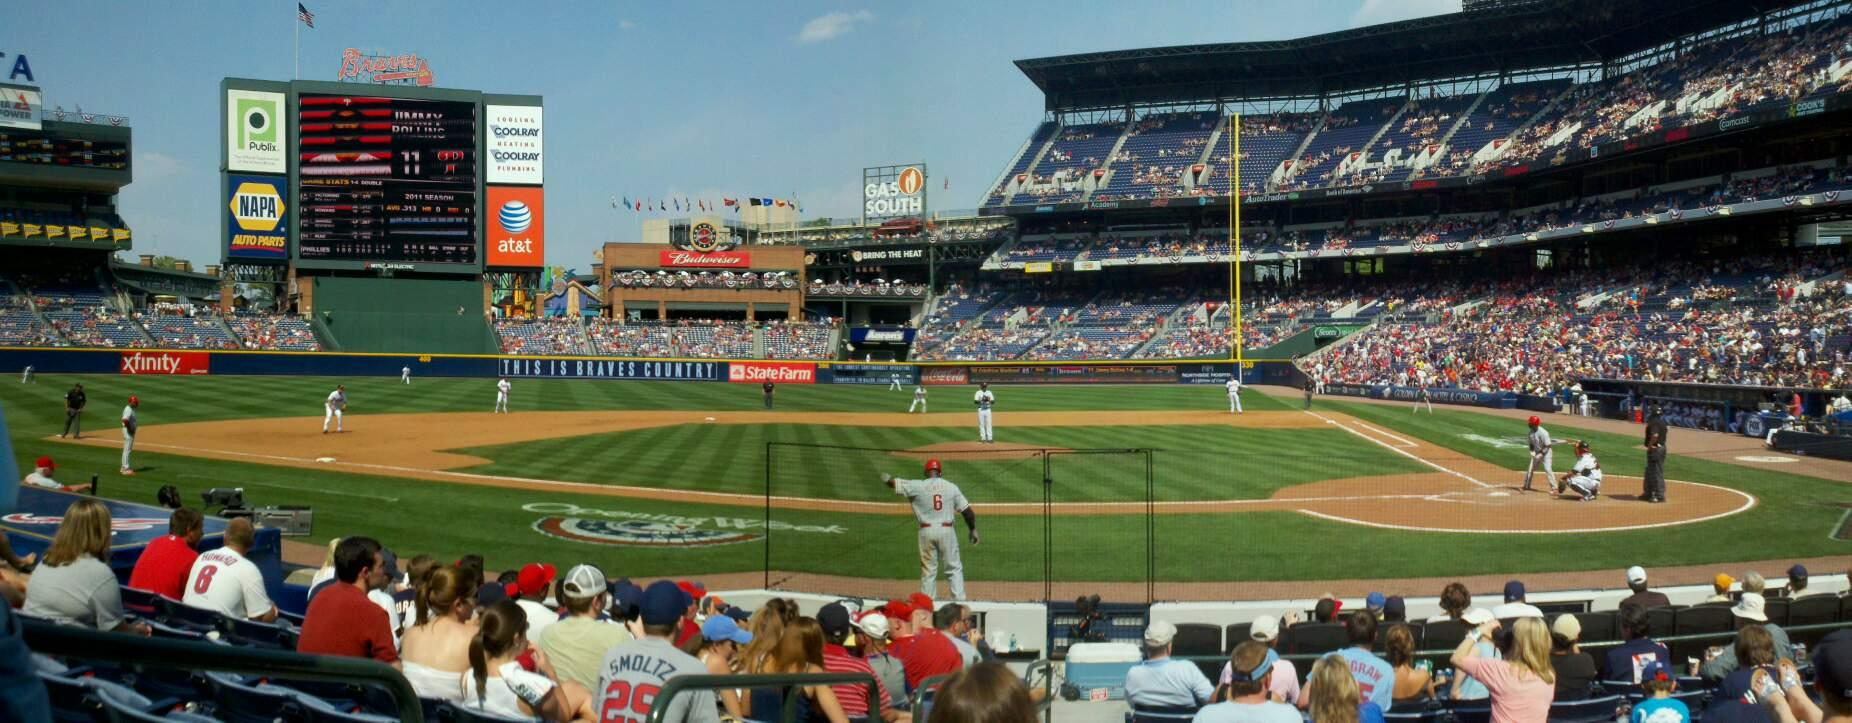 Turner Field Section 108 Row 11 Seat 2